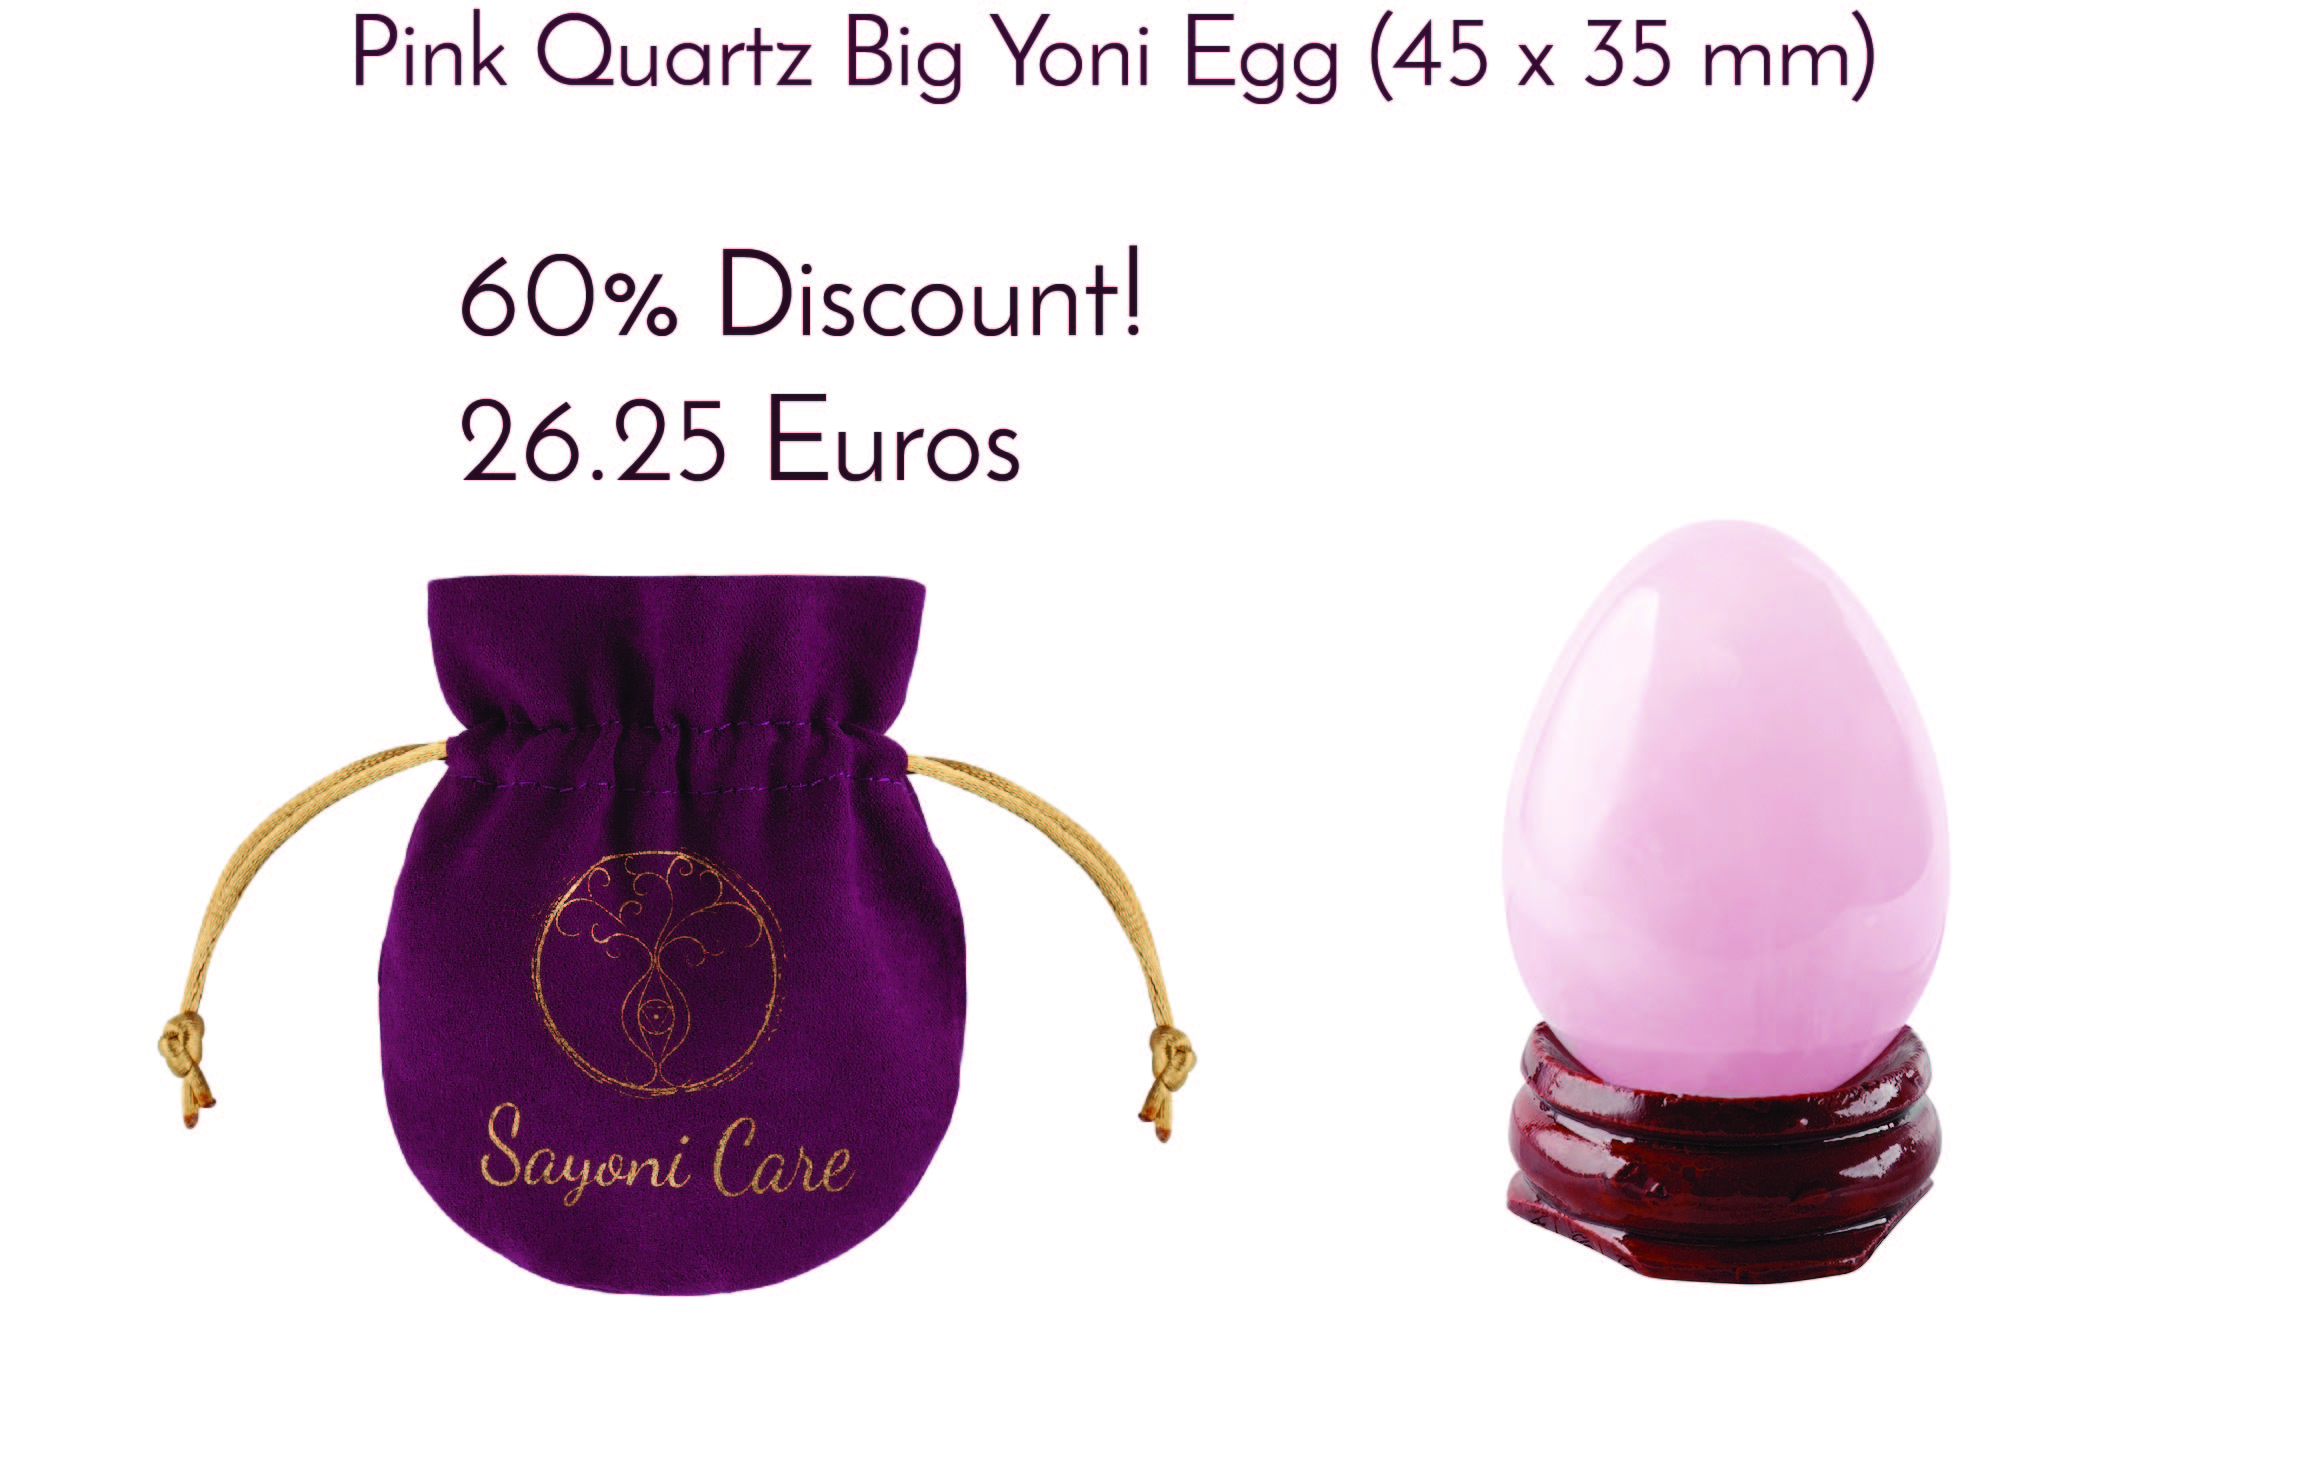 big-pink-quartz-yoni-egg-sayoni-care